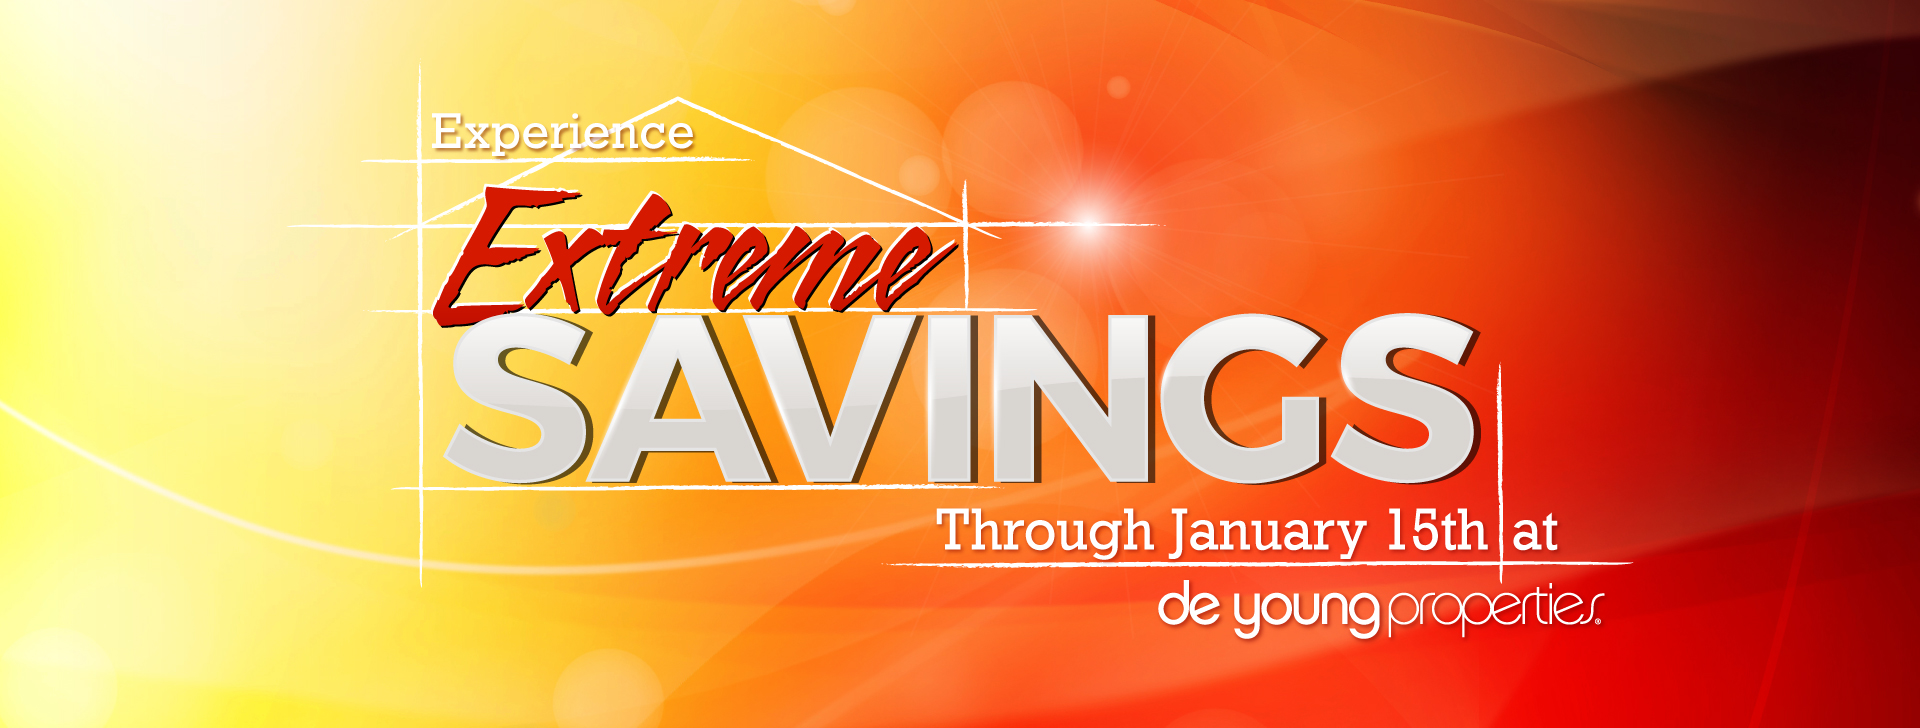 Experience Extreme Savings through January 15 at De Young Properties